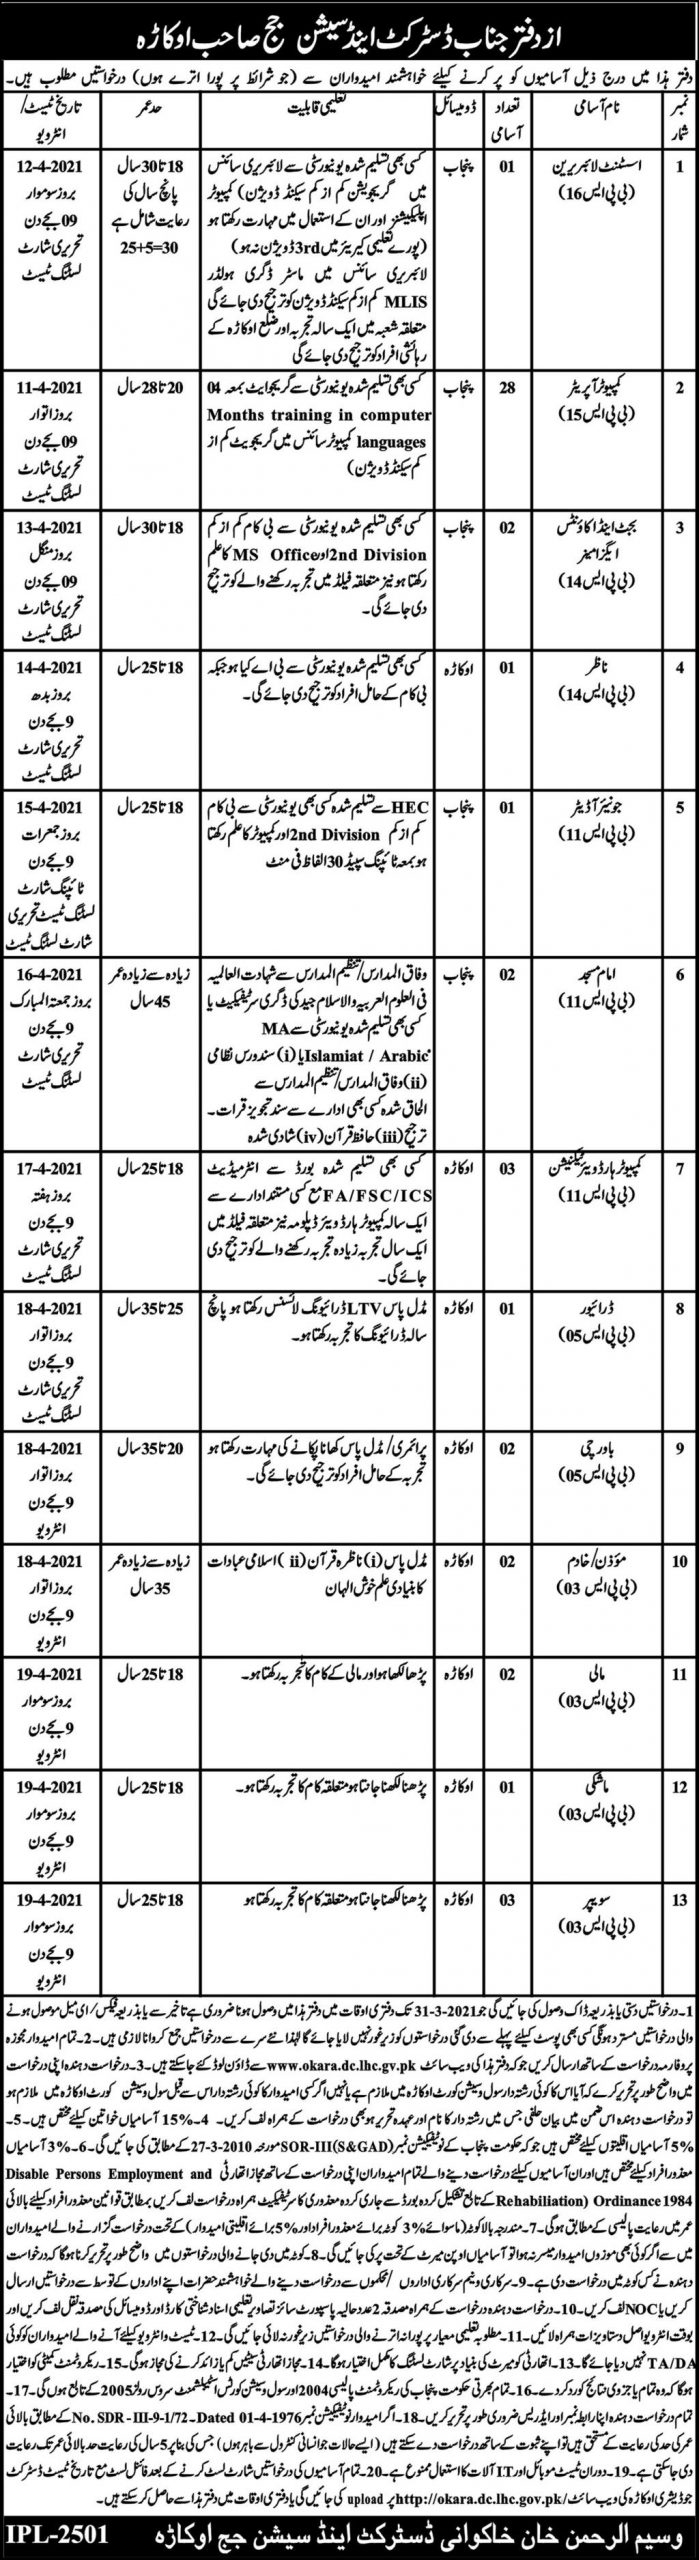 government,district and session judge okara,assistant librarian, computer operator, budget & accounts examiner, nazir, junior auditor, imam masjid, driver, cook, khadim, maali, mashki, sweeper,latest jobs,last date,requirements,application form,how to apply, jobs 2021,